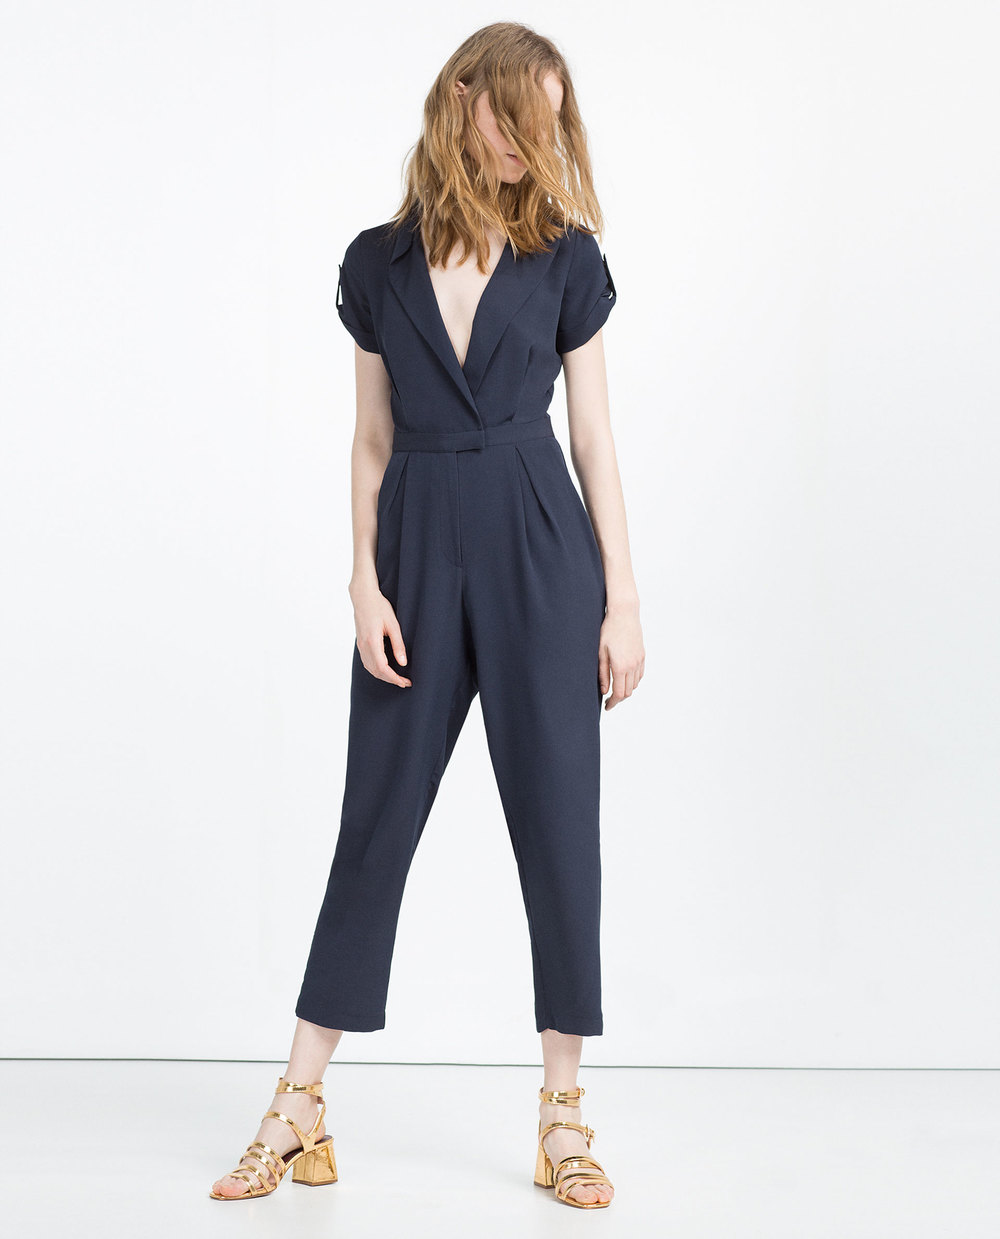 Long Jumpsuit available at Zara- $69.90